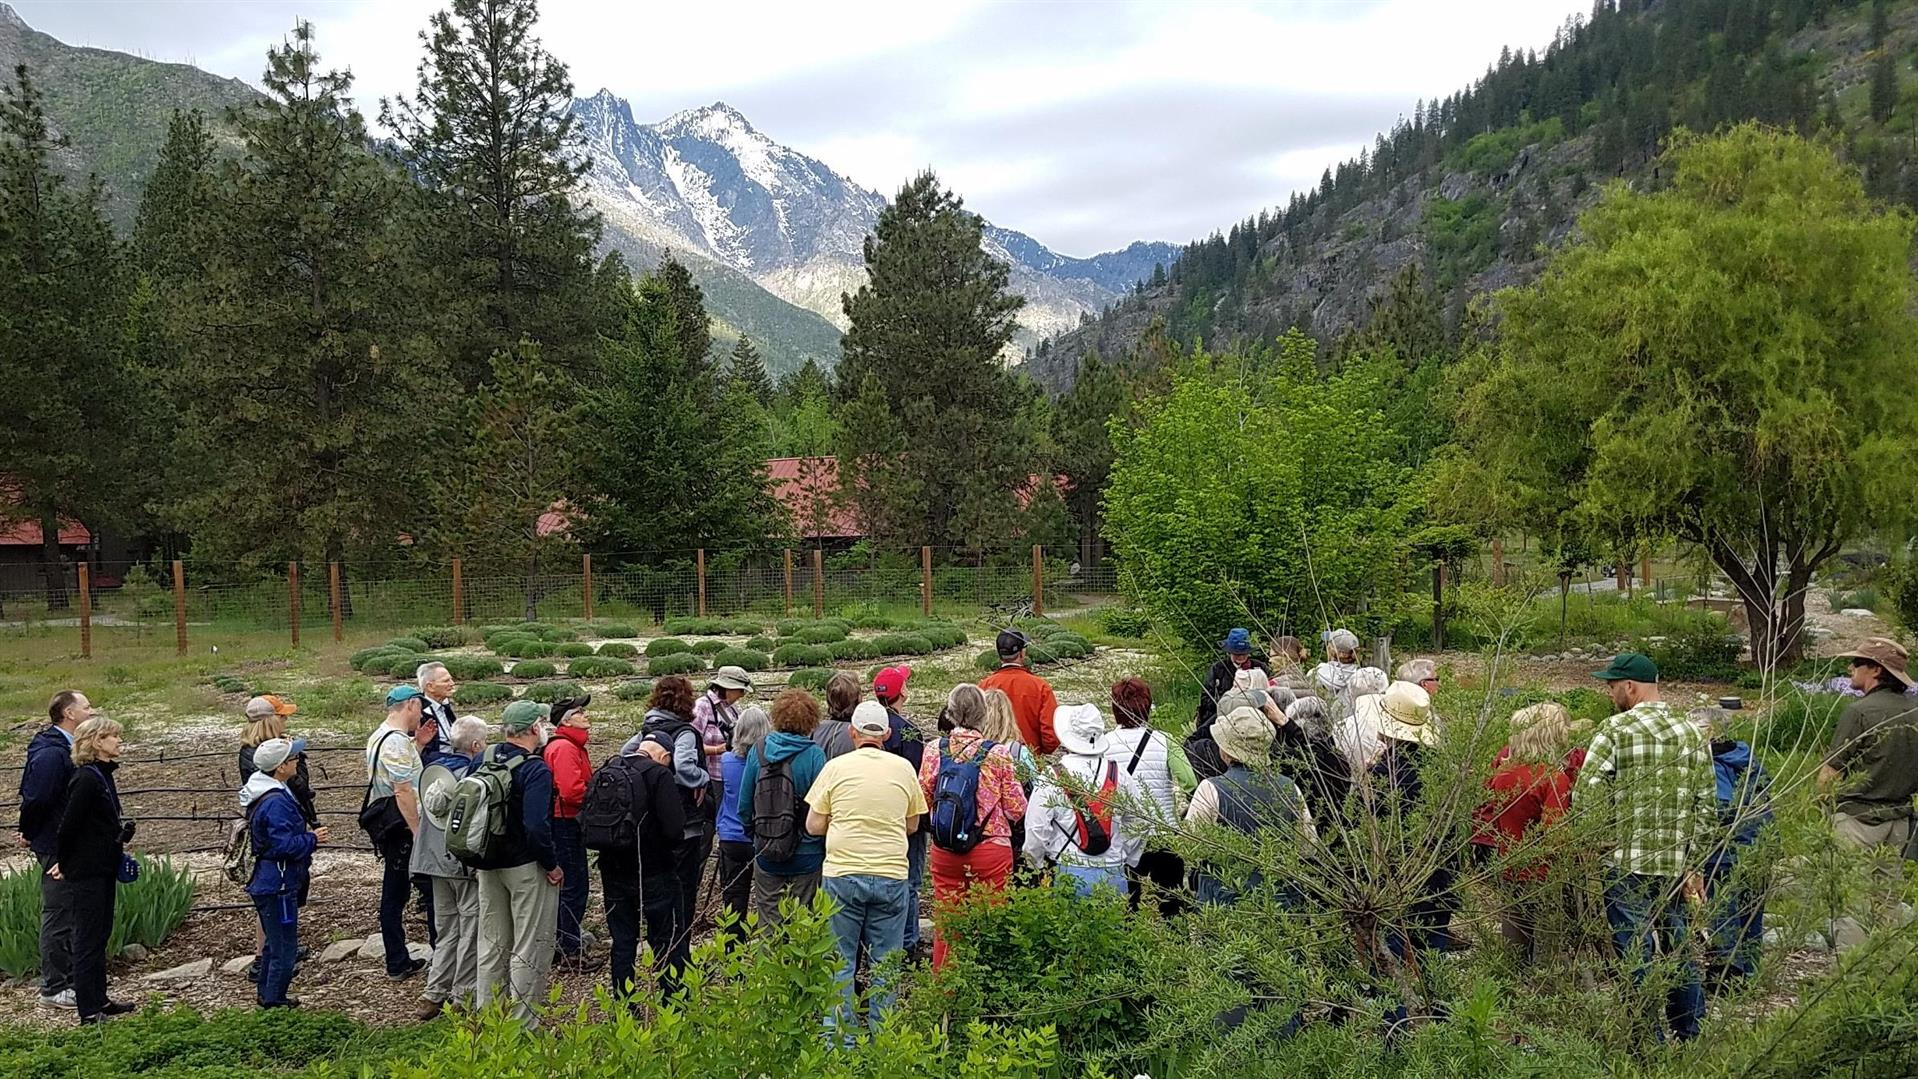 meetings and events at sleeping lady mountain resort, leavenworth